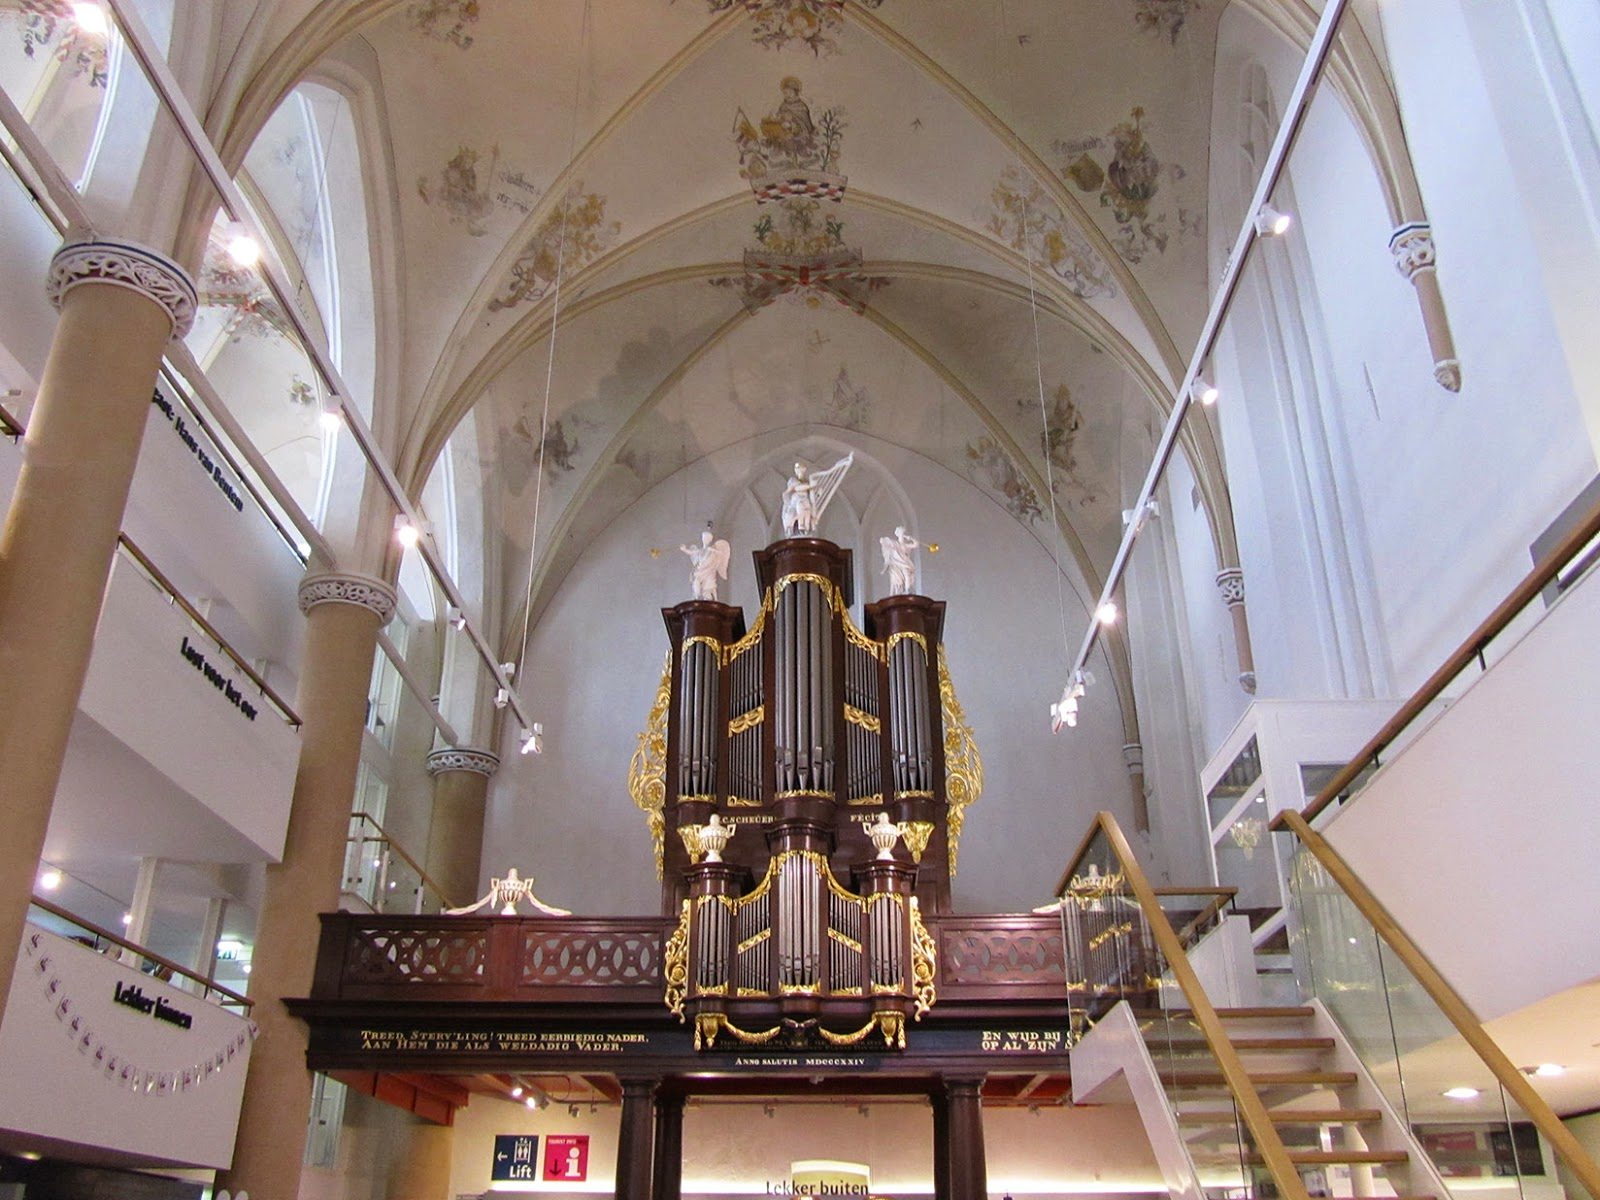 organ at Waanders in de Broeren